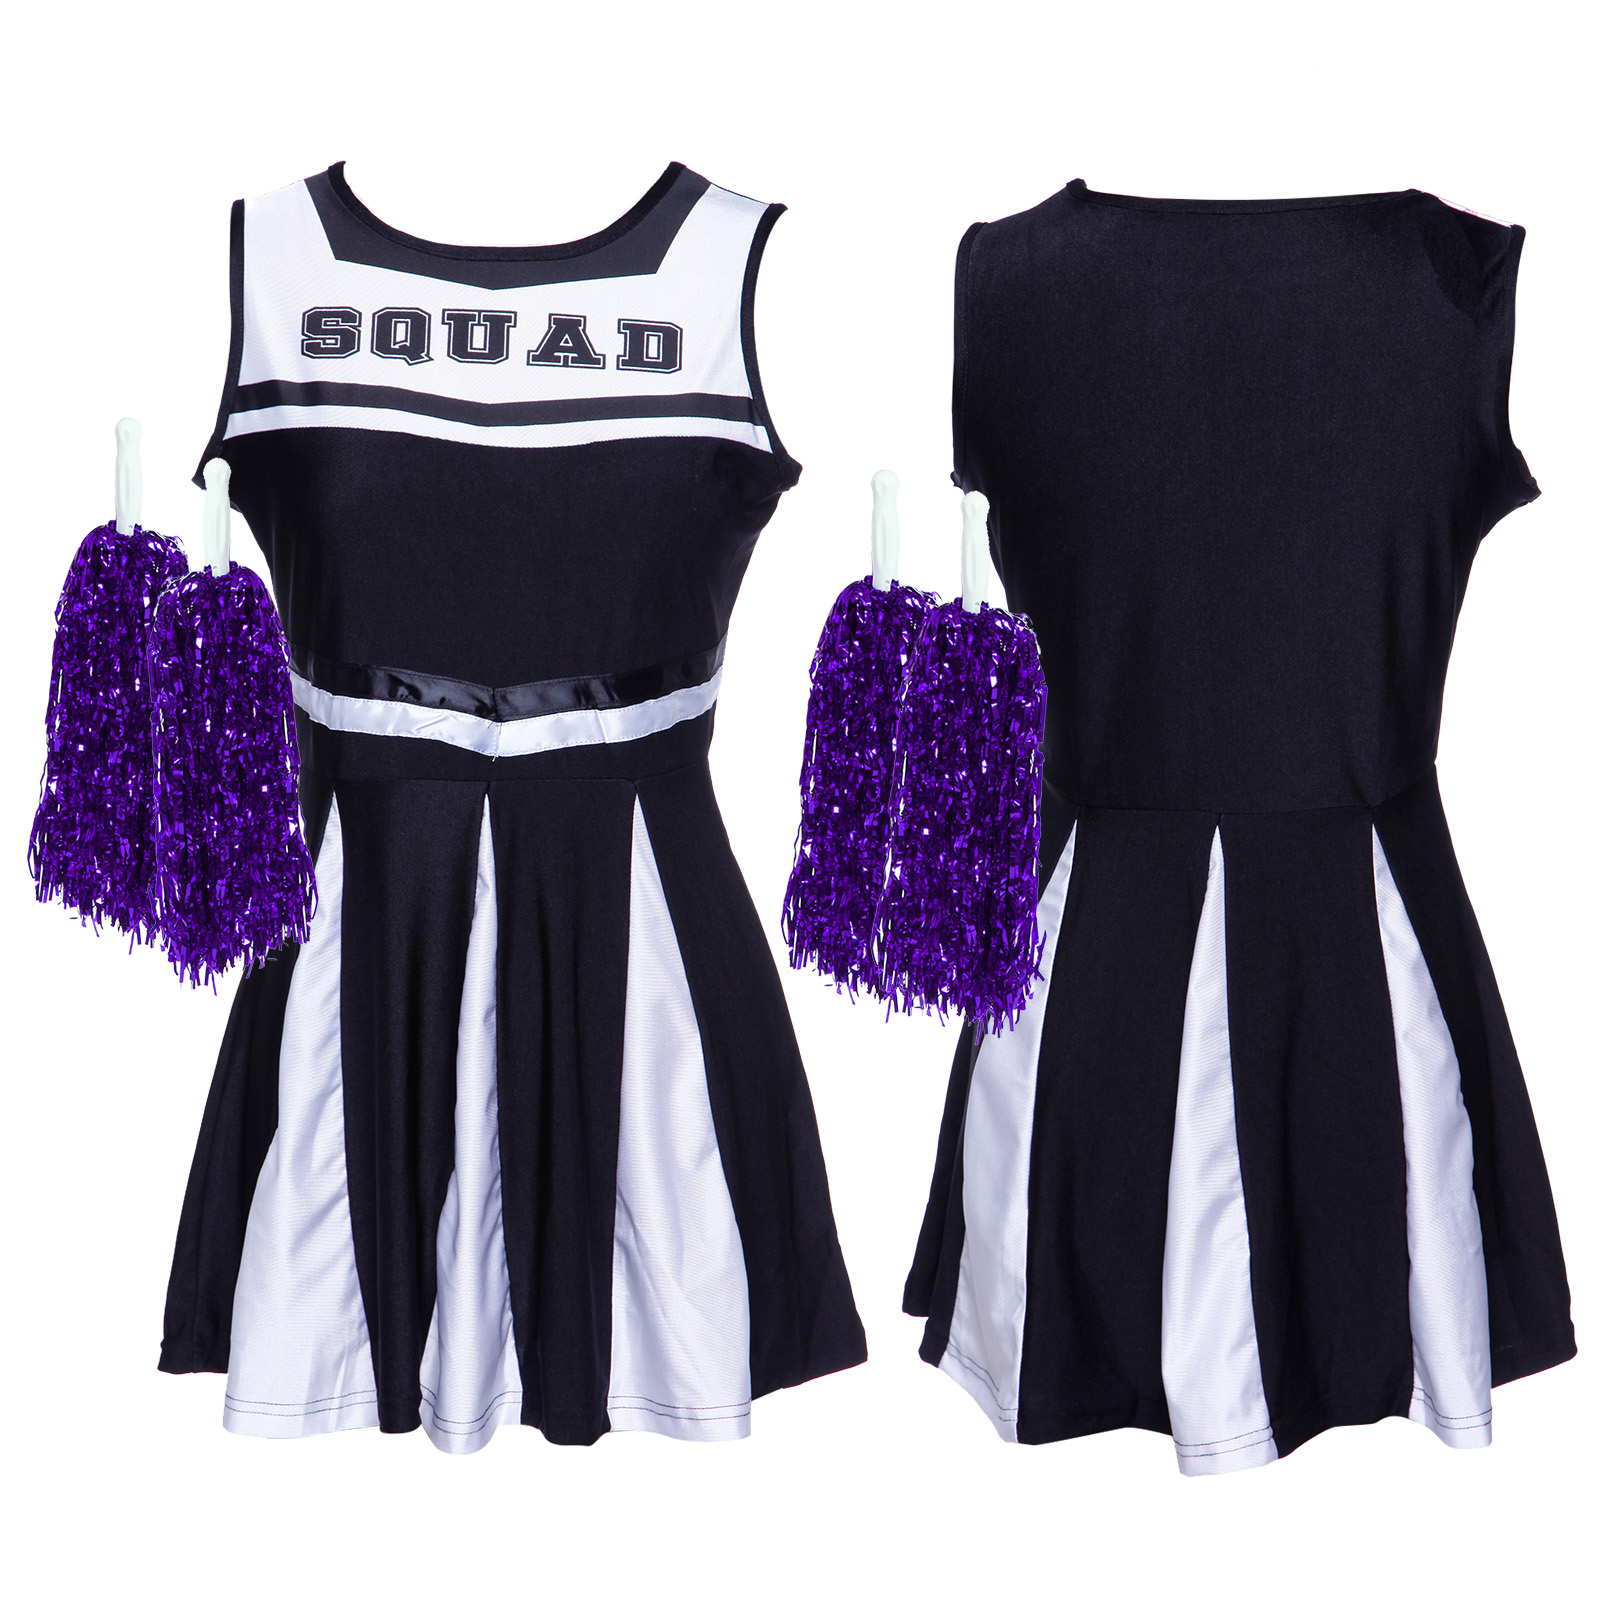 Cheerleader-Fancy-Dress-Outfit-High-School-Musical-Cheer-Uniform-Costume-Pompoms miniature 9